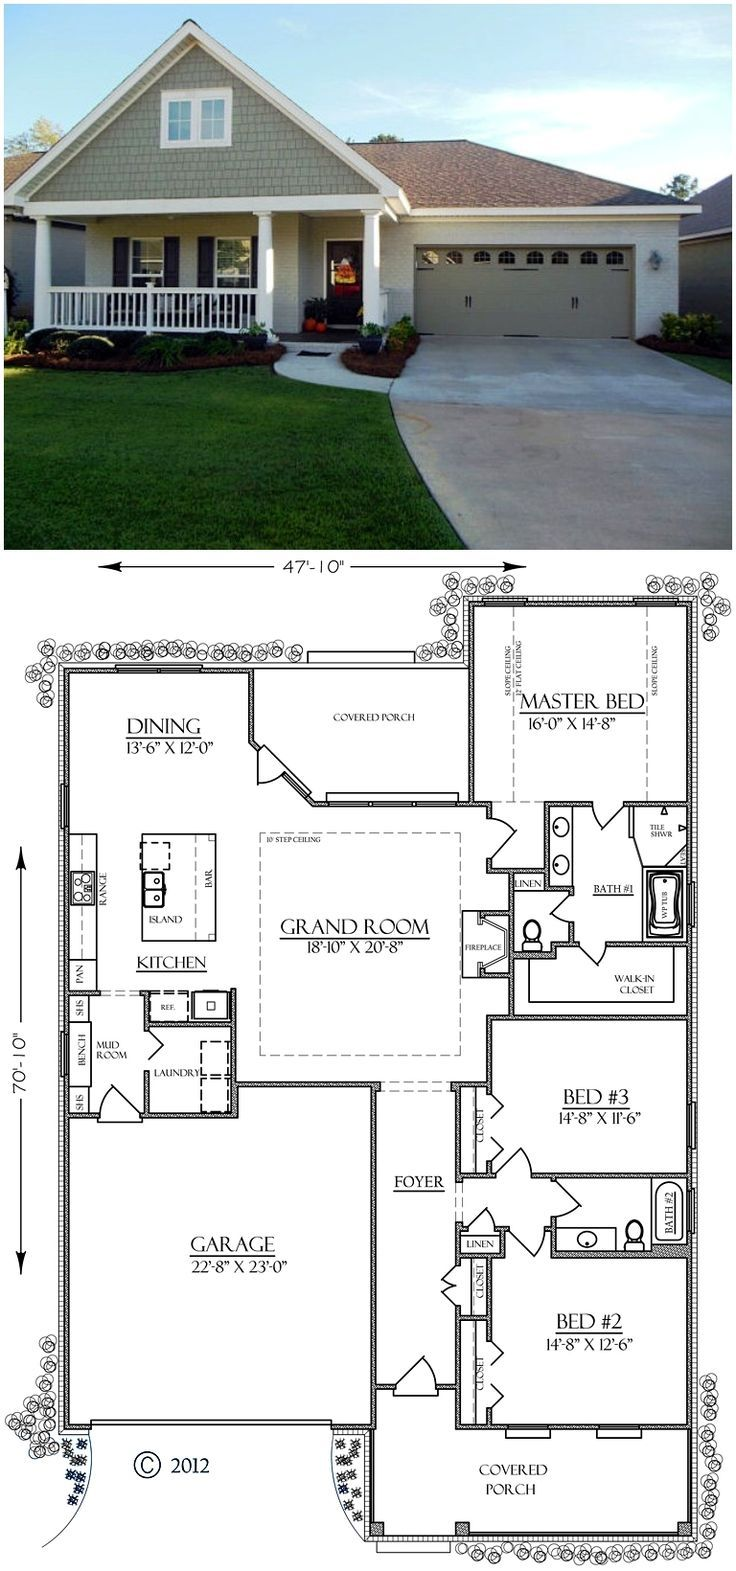 house plan 74755 finally one i wouldnt change structurally just screen in - House Floor Plan